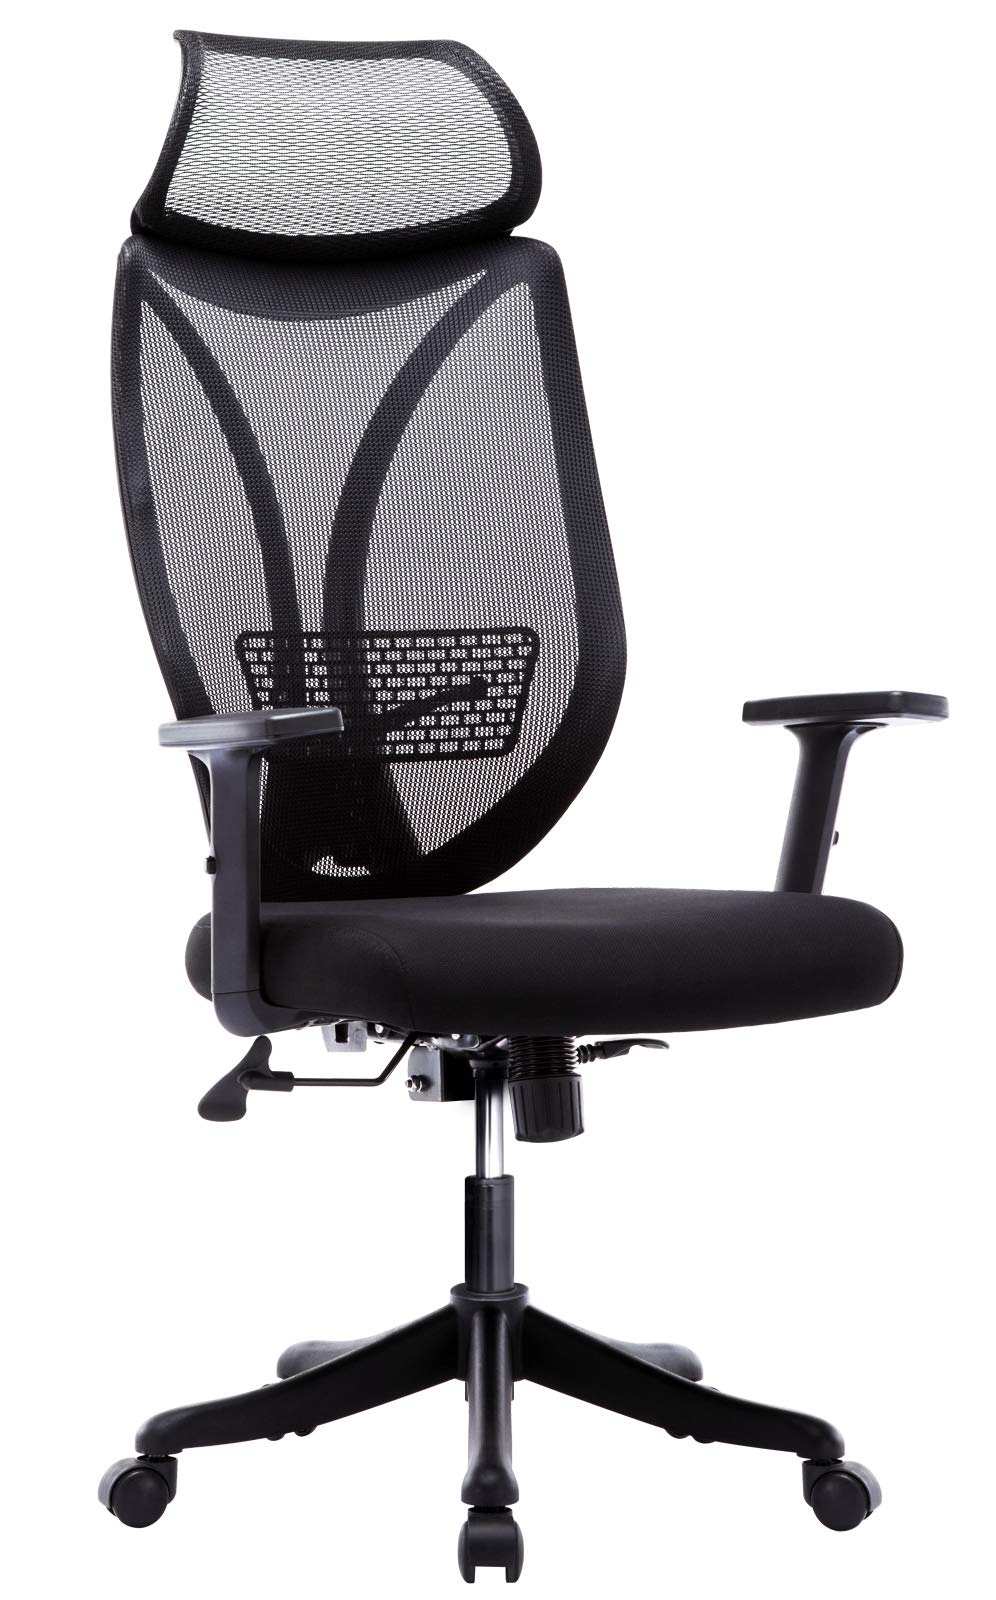 IntimaTe WM Heart High Back Ergonomic Executive Office Chair,Adjustable  Mesh Desk Chair,Office Chair with Arms and Lumbar Support,Computer Chairs